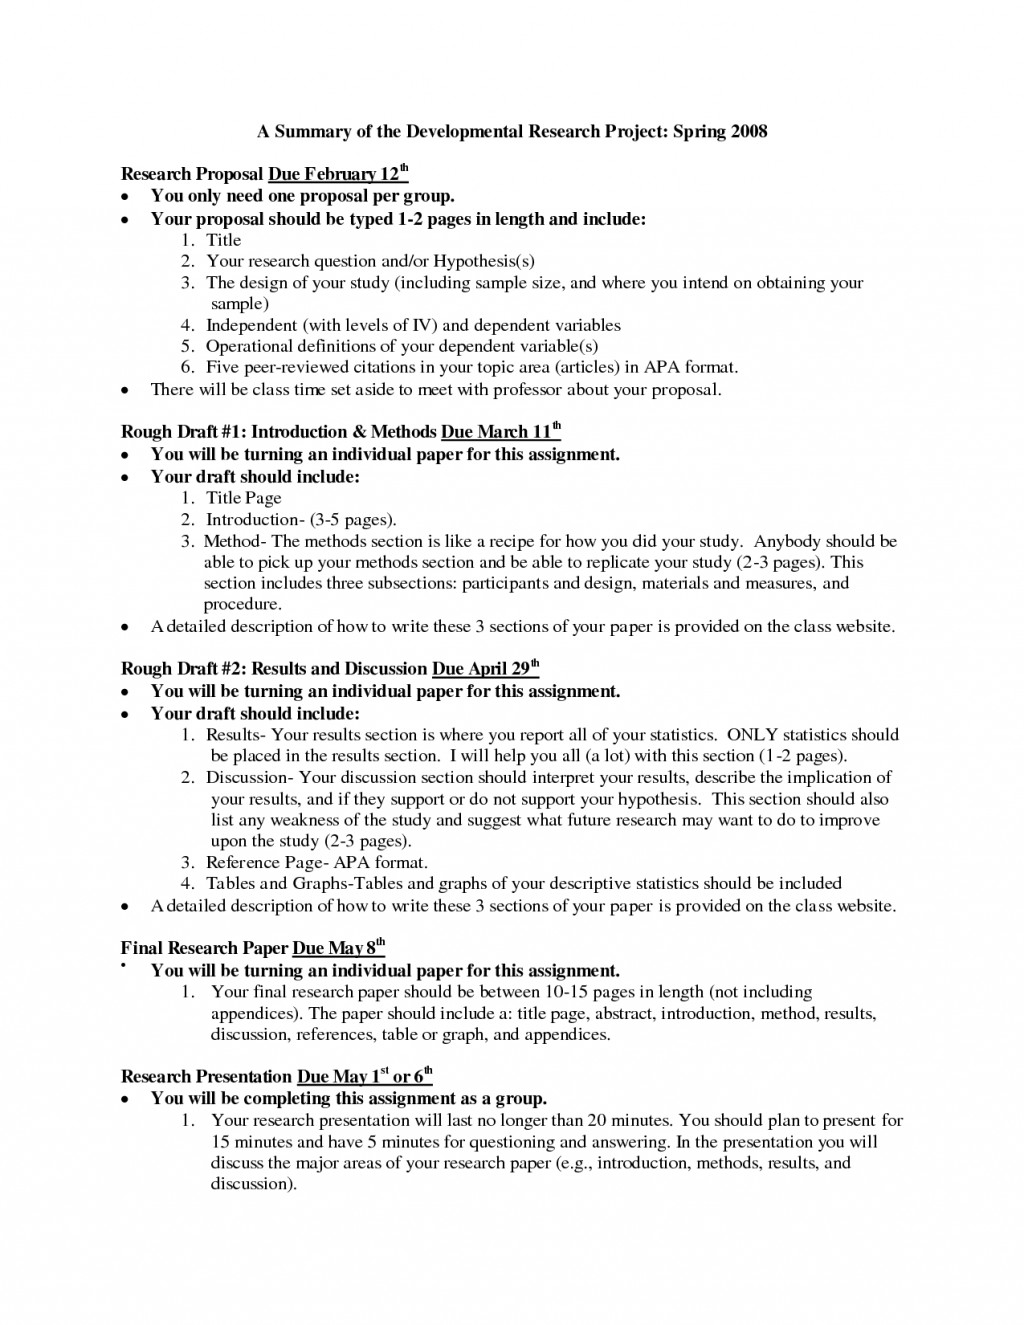 009 Good Topics For Researchs Psychology Undergraduate Resume Unique Sample Of Awesome Research Papers Argumentative In College Interesting Paper The Philippines Large